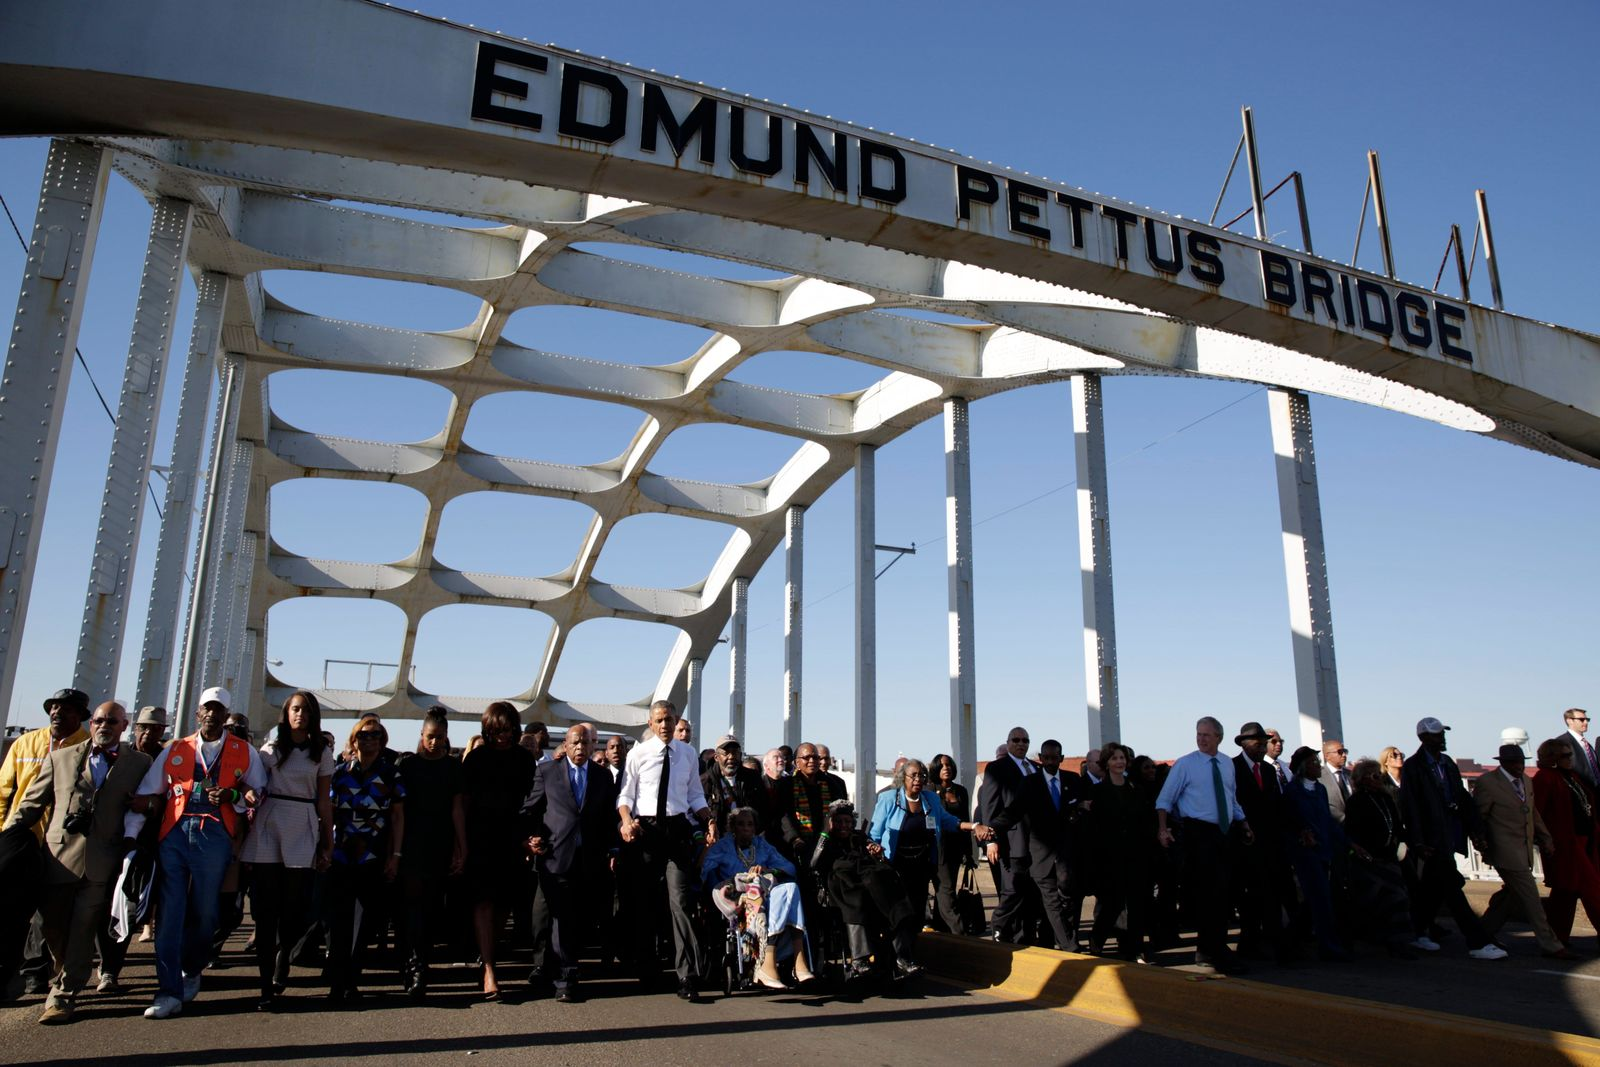 President Barack Obama, First Lady Michelle Obama, Marian Robinson, Malia and Sasha Obama, join Rep. John Lewis, former President George W. Bush, former First Lady Laura Bush, former foot soldiers and other dignitaries in marching across the Edmund Pettus Bridge to commemorate the 50th Anniversary of Bloody Sunday in Selma, Alabama, March 7, 2015.(Official White House Photo by Pete Souza via National Archives)